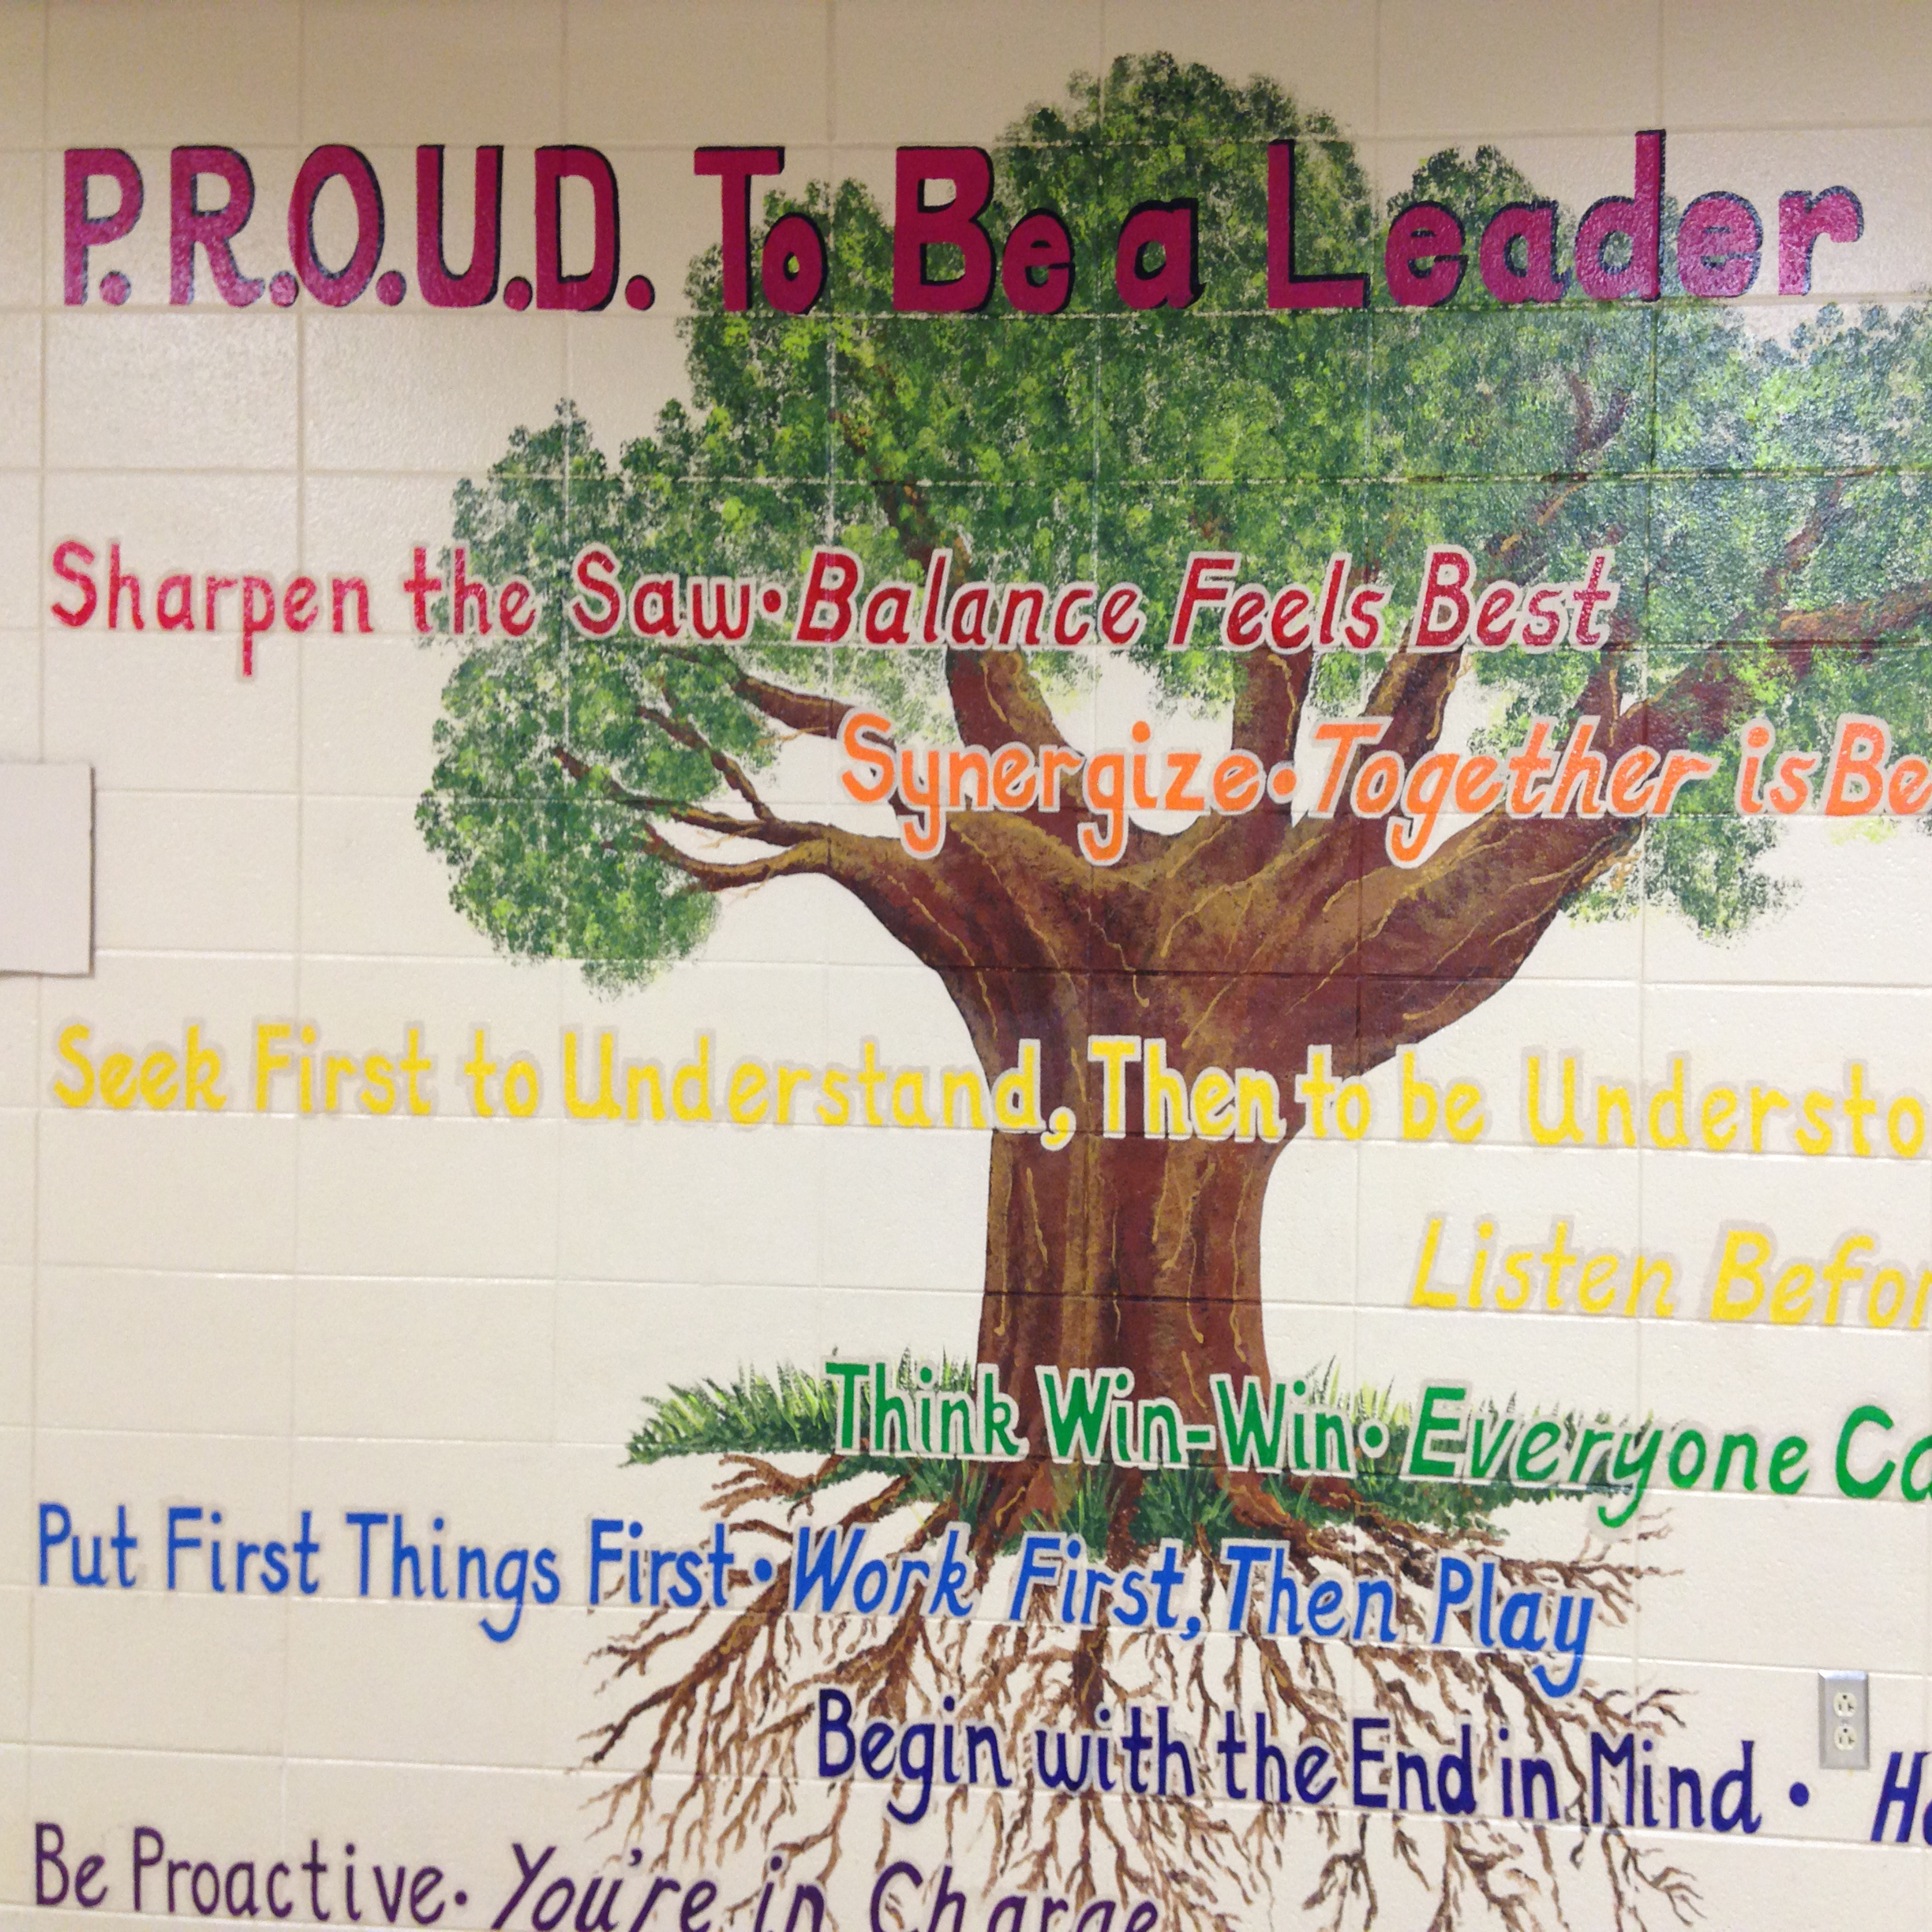 Image of PROUD Tree at Pickerington Elementary